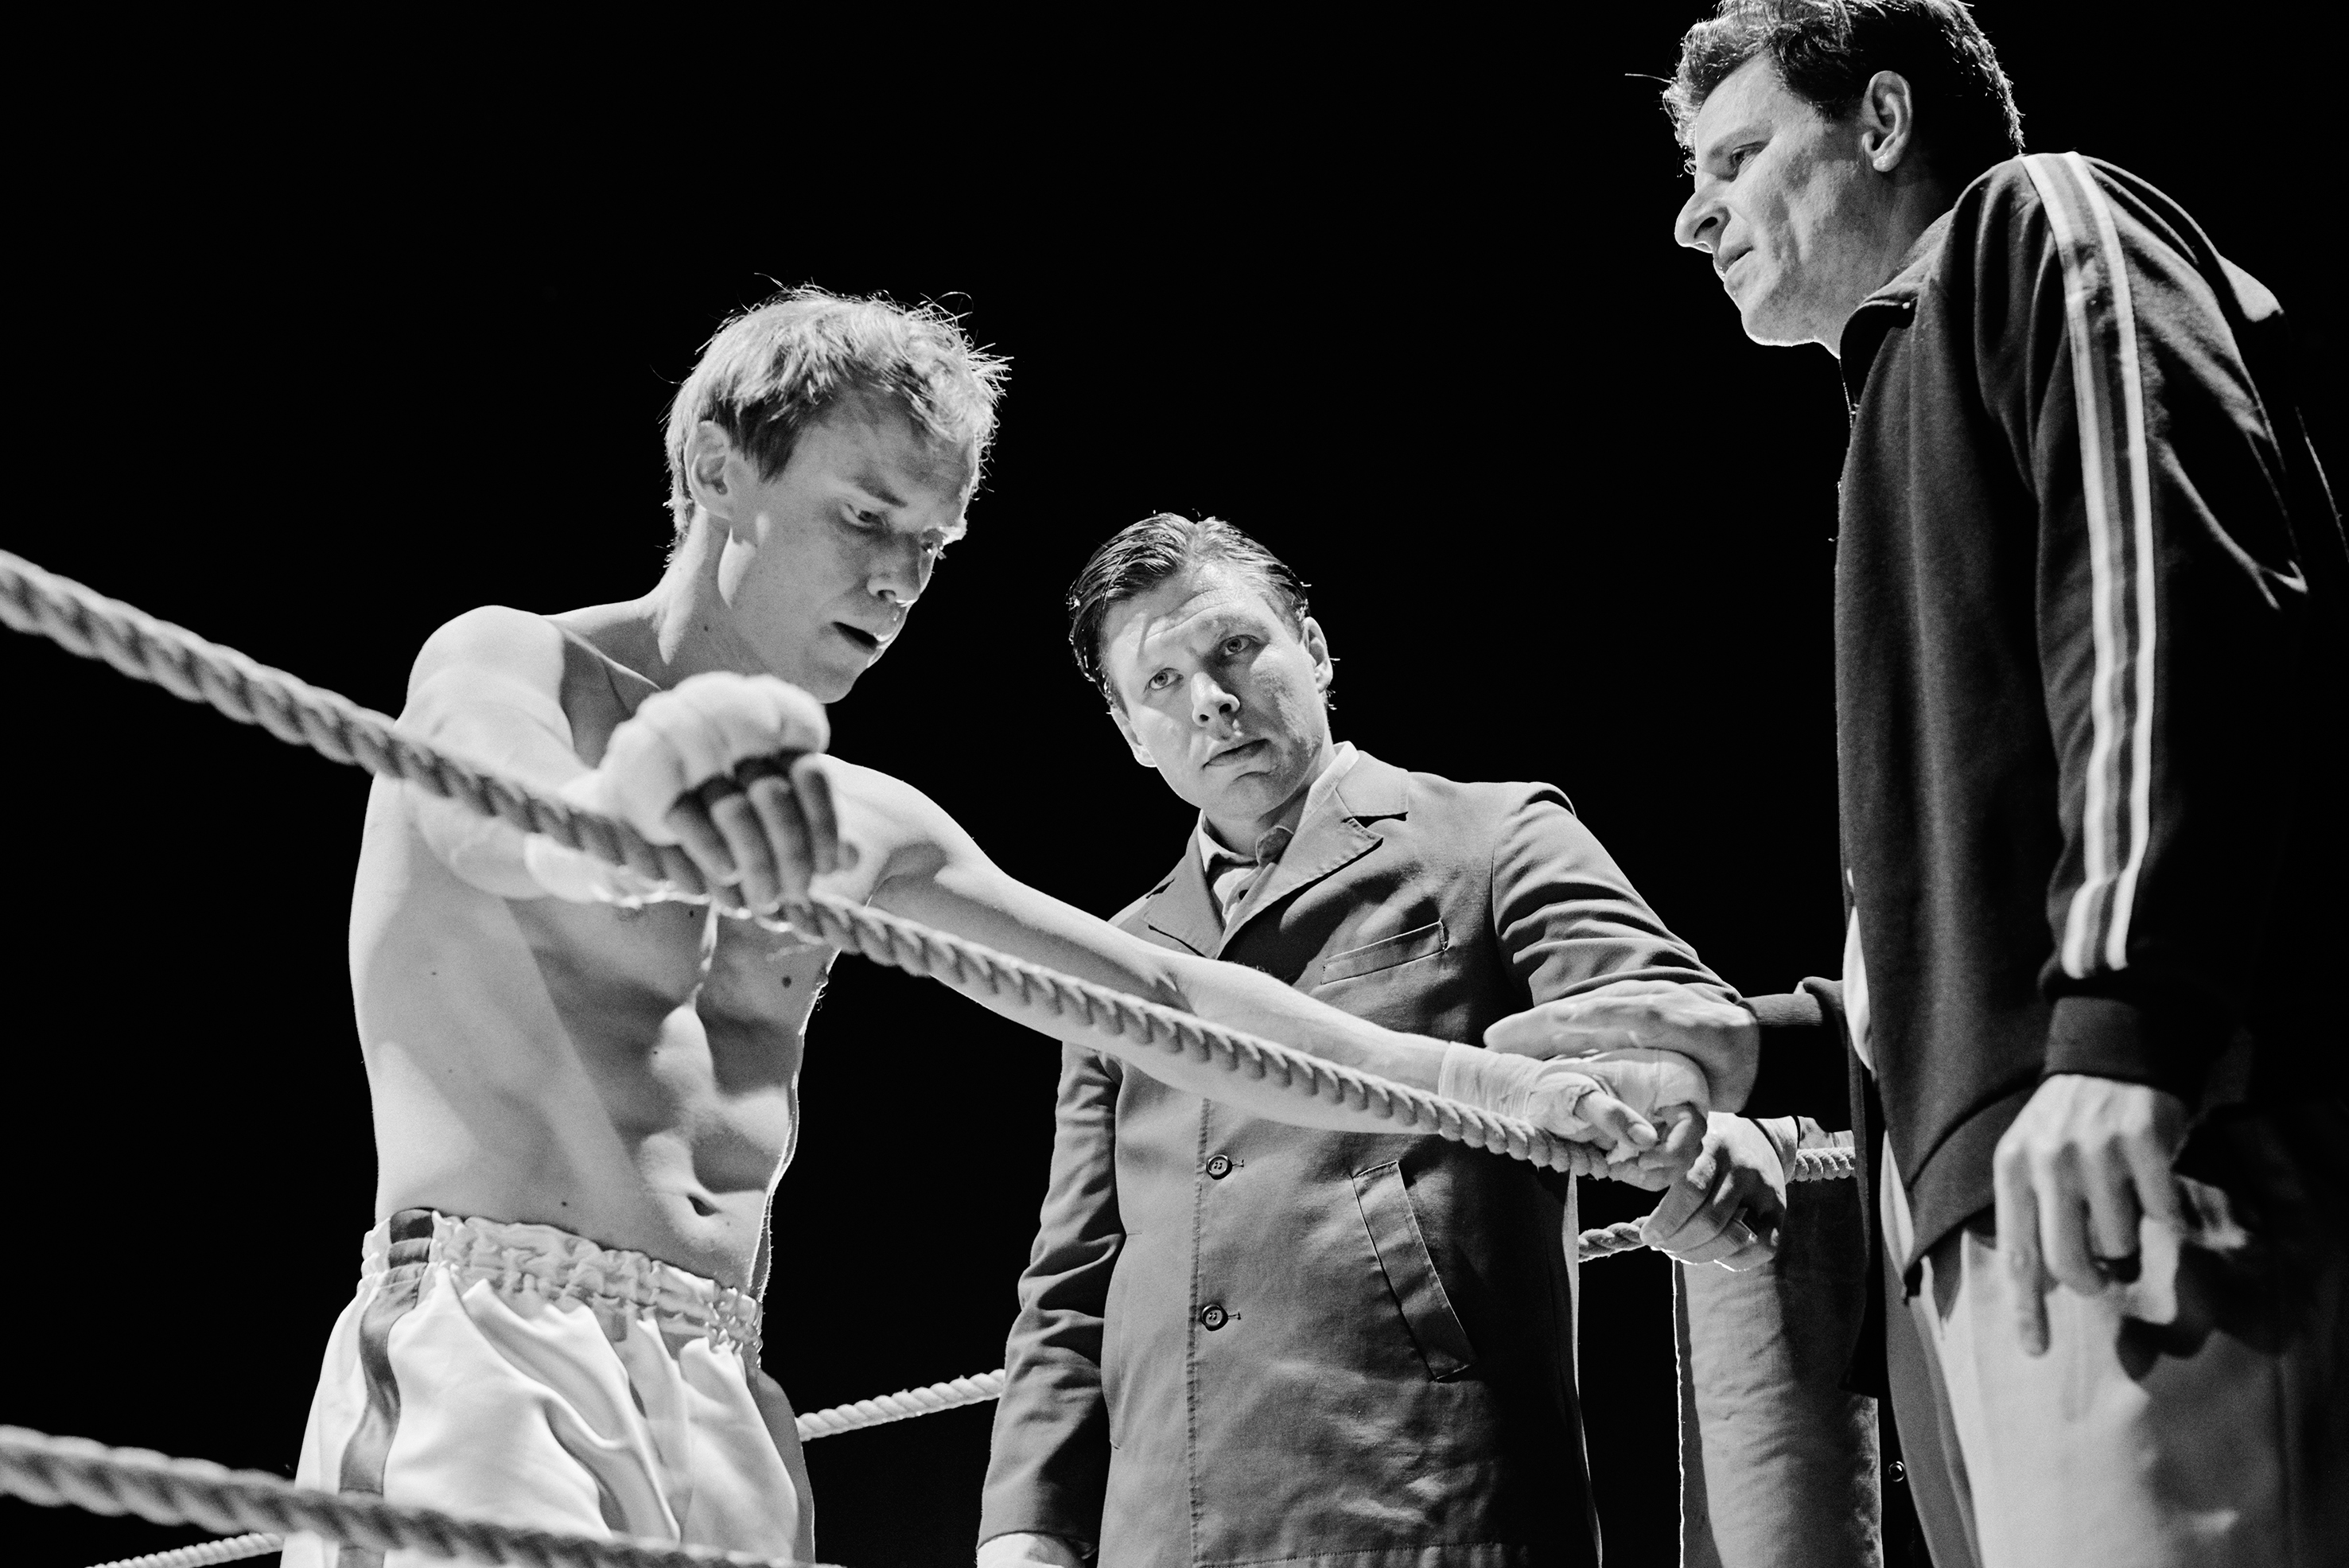 Photograph in black and white, of a boxer holding onto the rope around the boxing ring, thinking. Next to him are two men looking at him.